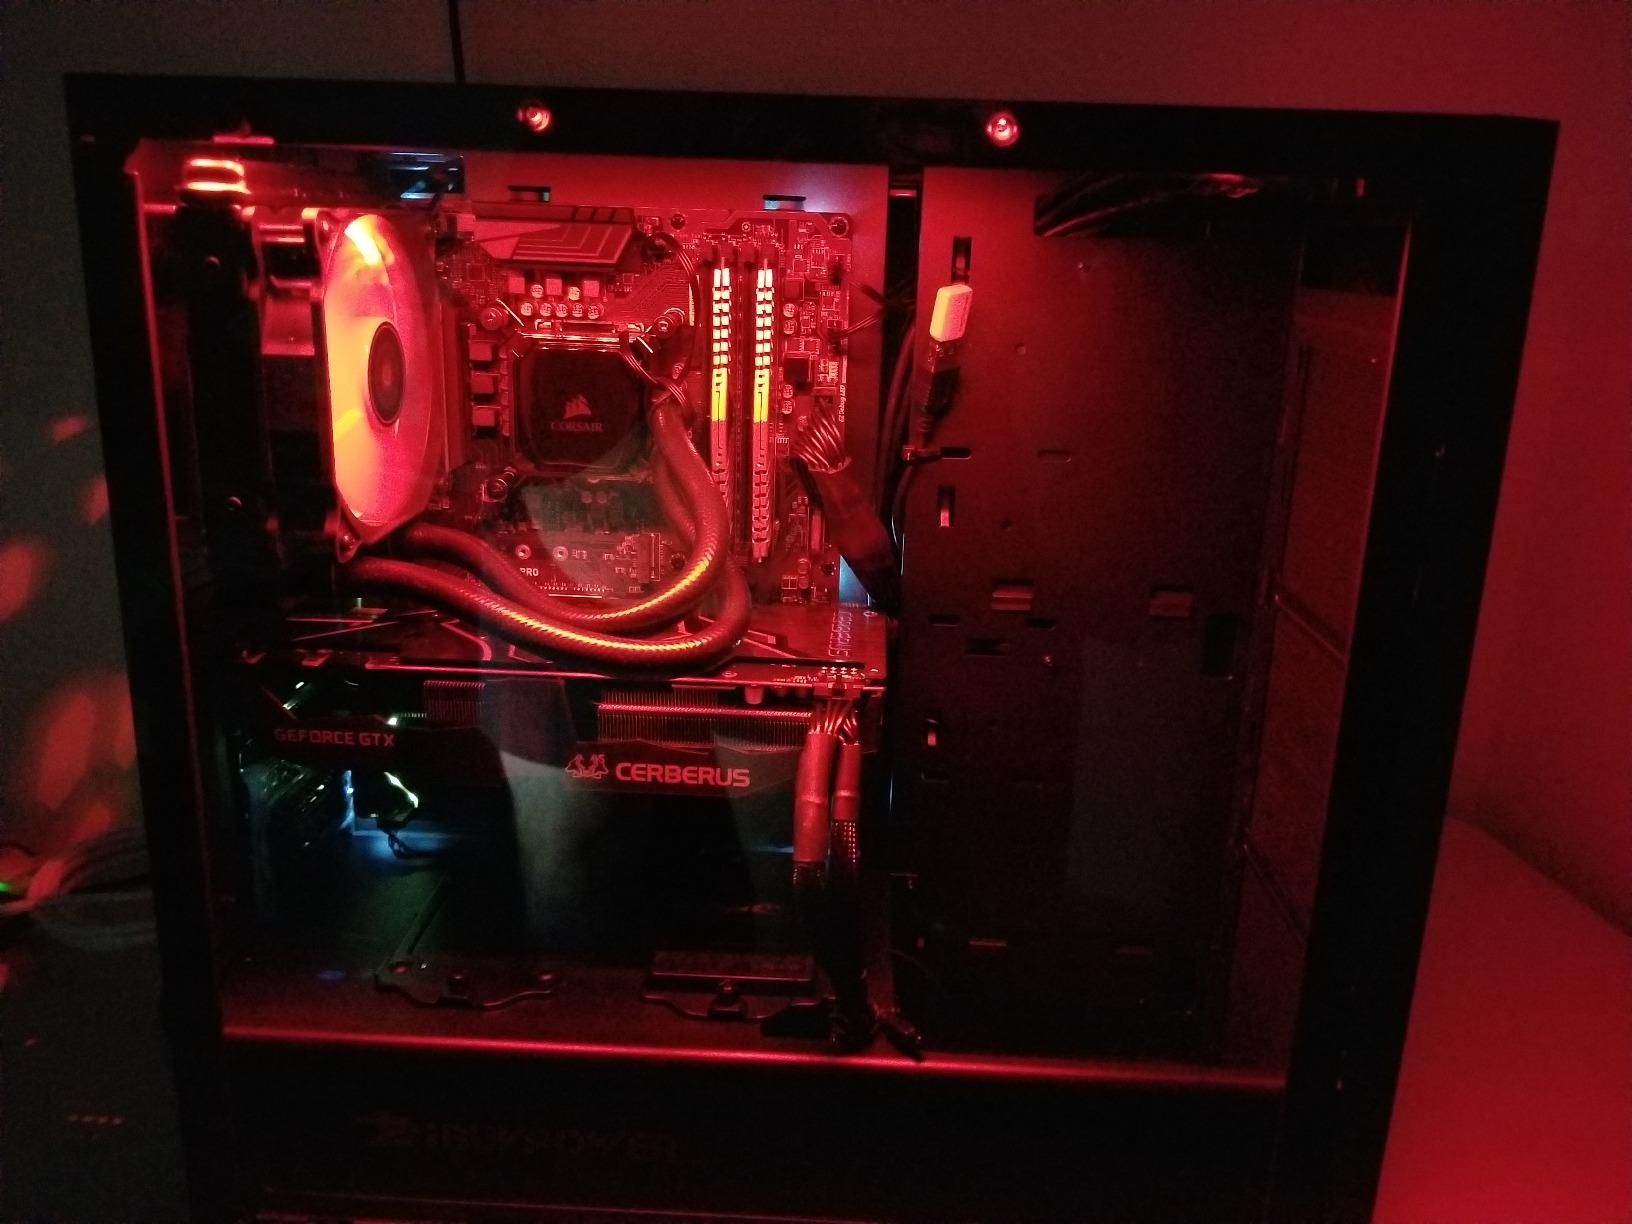 Best gaming computer-iBUYPOWER Gaming PC Desktop i7-8700K 6-Core 3.7 GHz